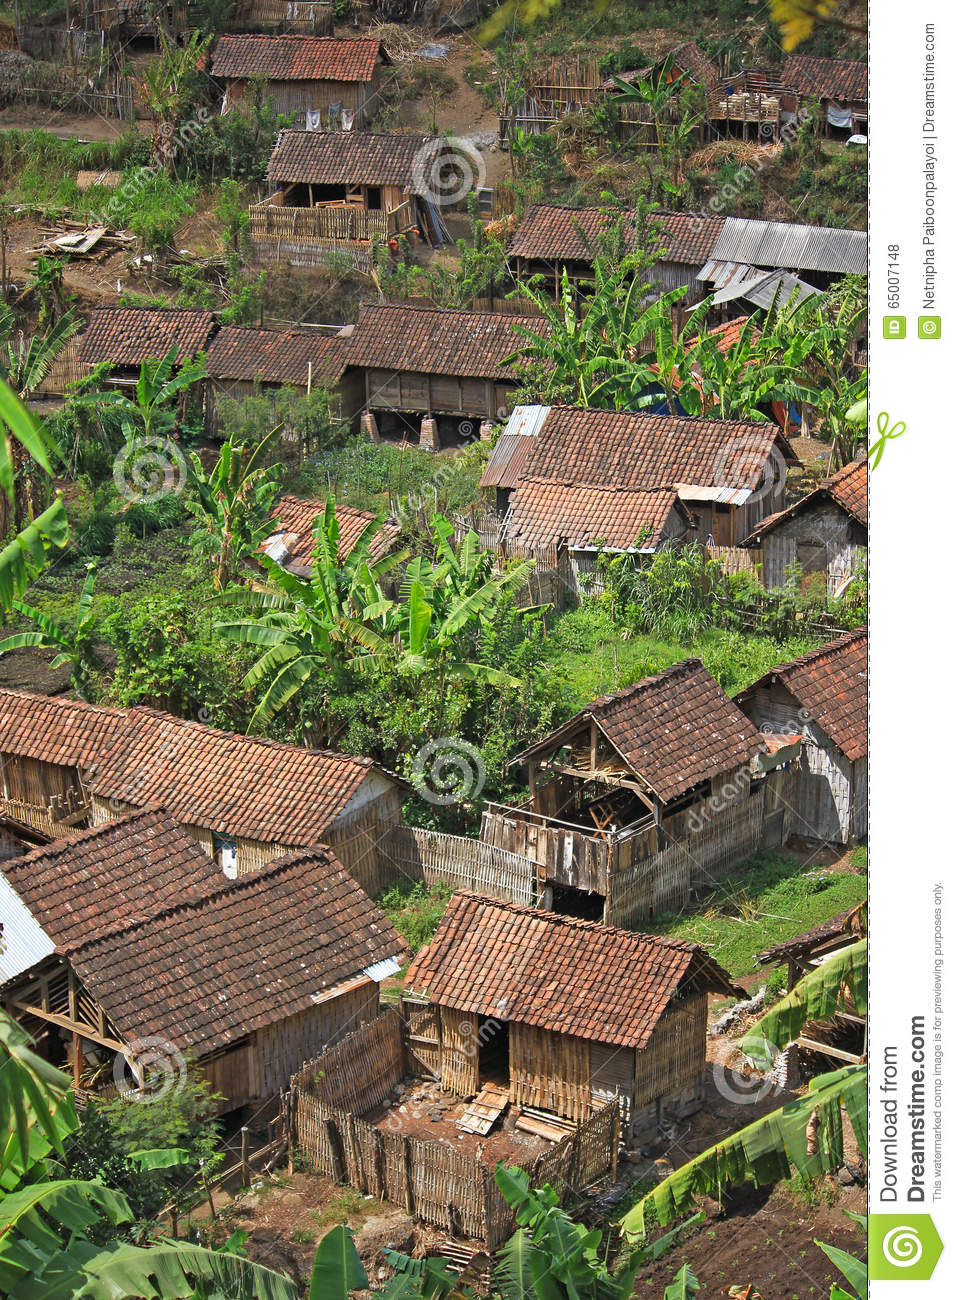 Small Traditional Village In Indonesia Stock Photo Image